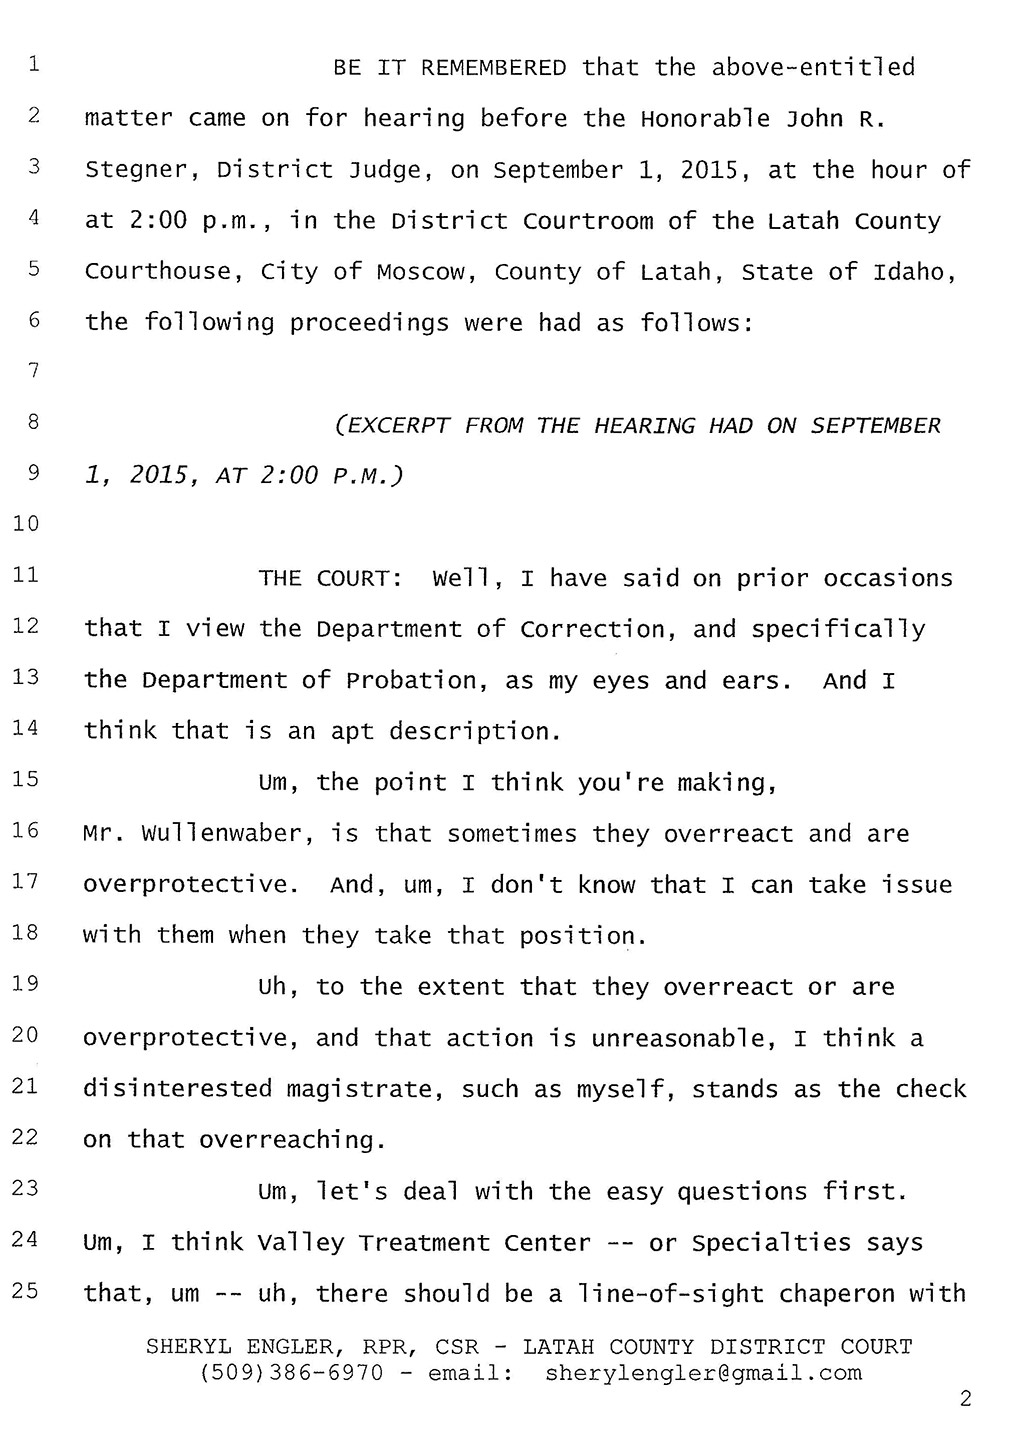 Exhibit B: Excerpted Court Transcript, page 2